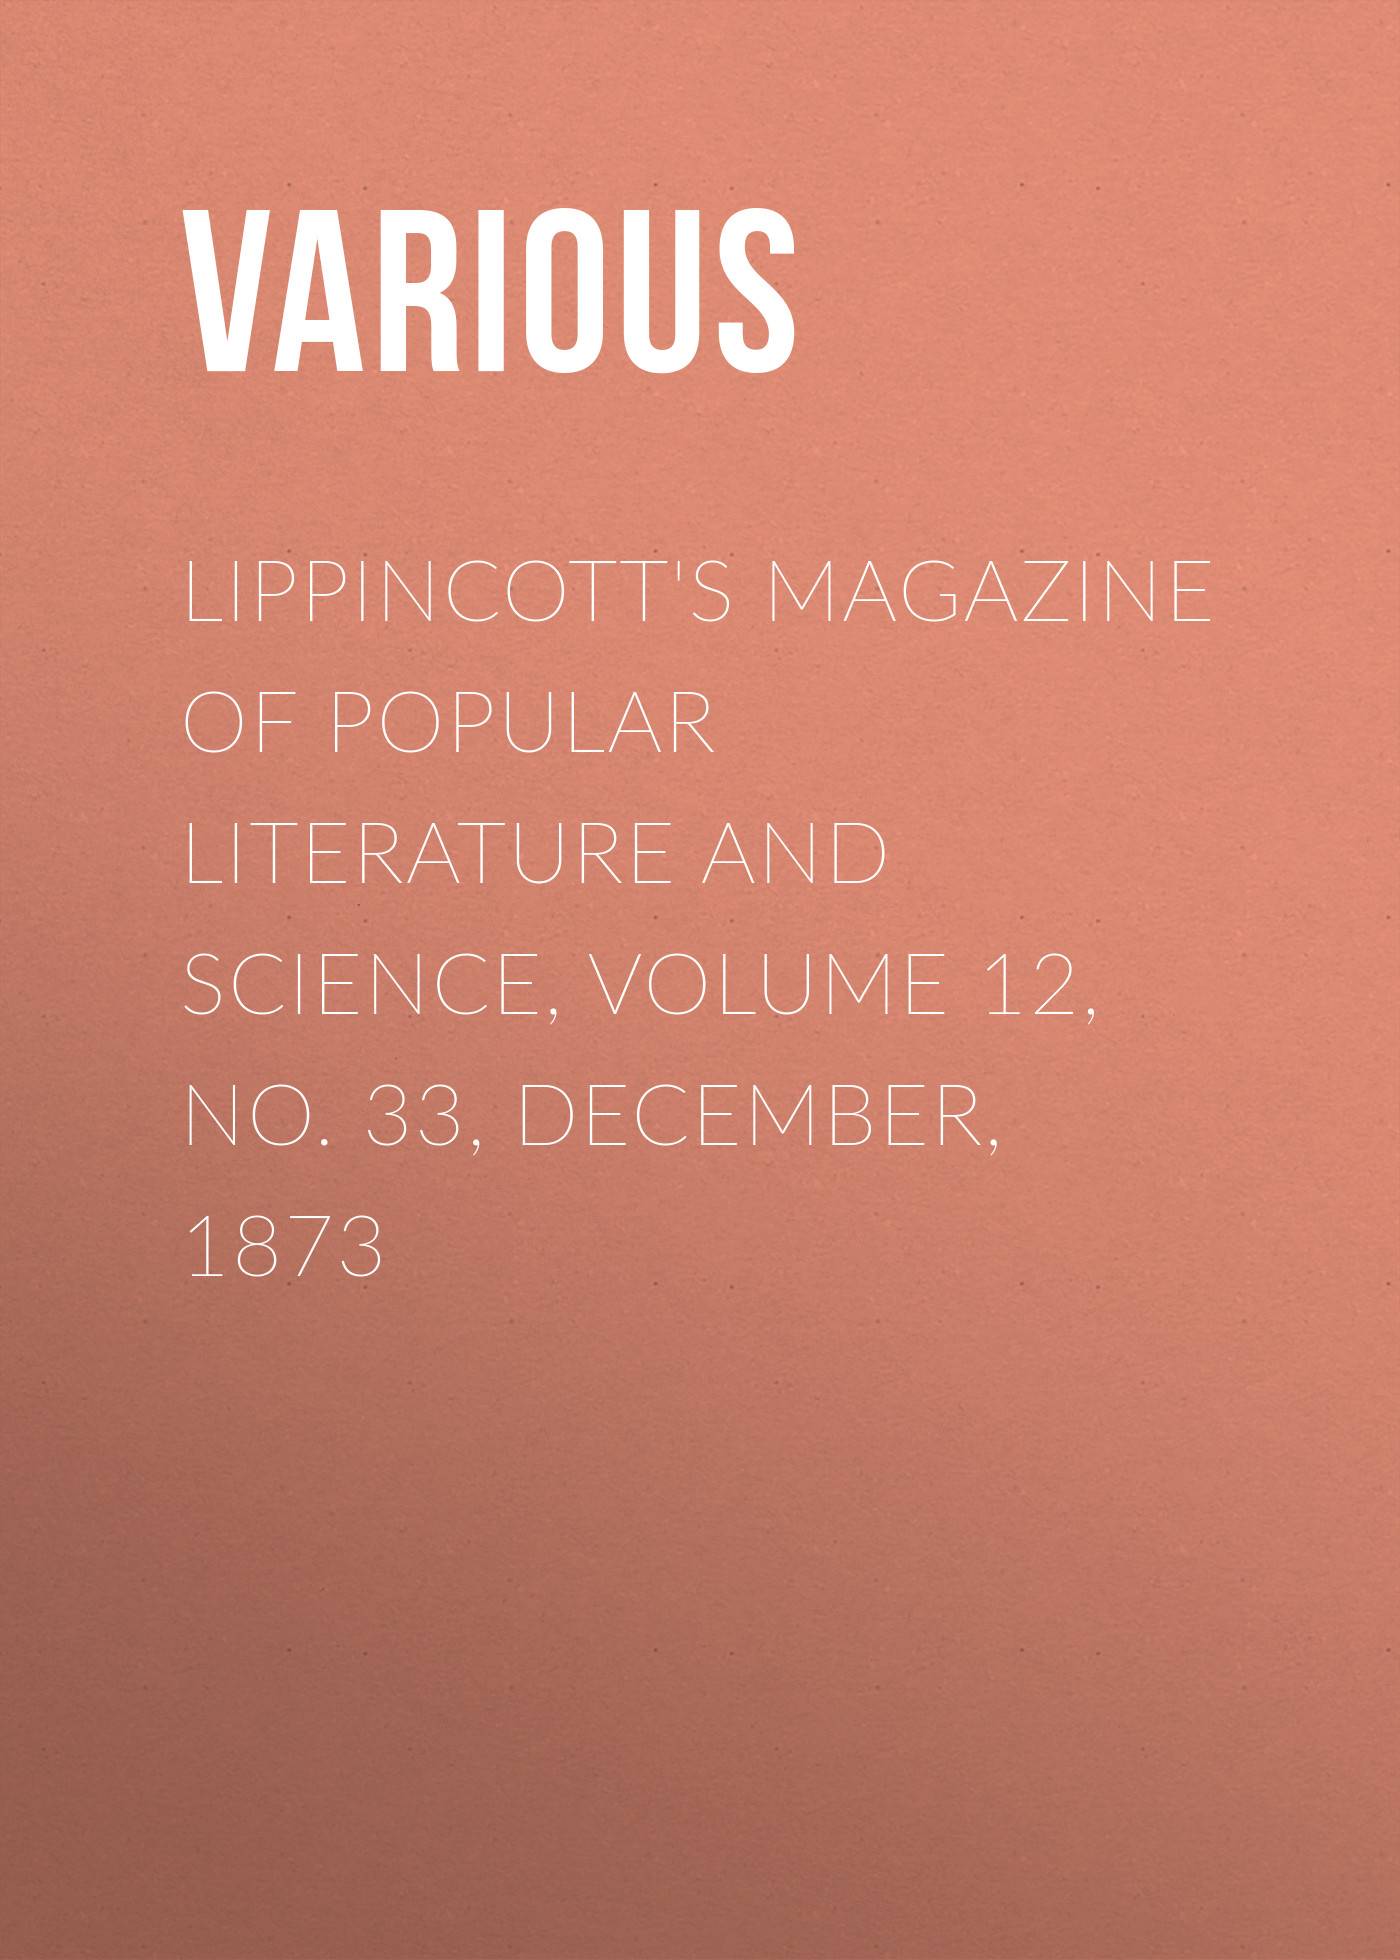 Lippincott\'s Magazine of Popular Literature and Science, Volume 12, No. 33, December, 1873 ( Various  )